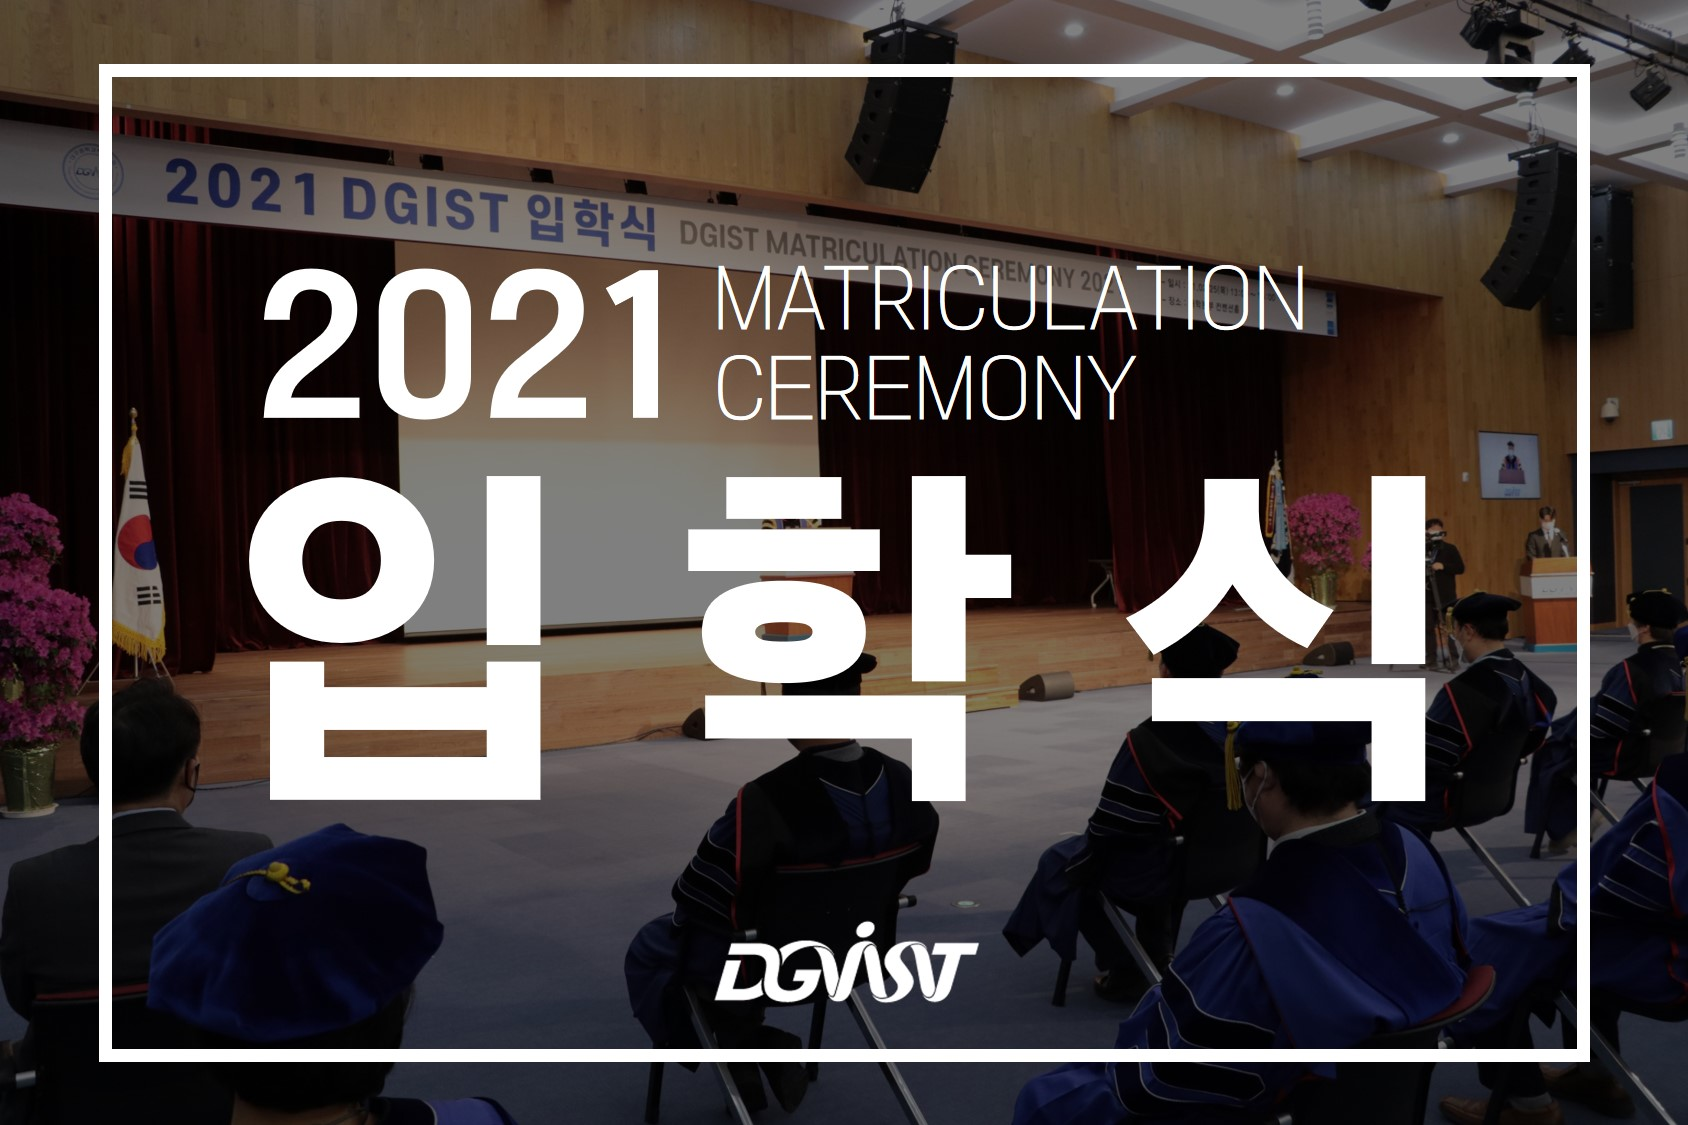 2021 MATRICULATION CEREMONY 입 학 식 DGIST